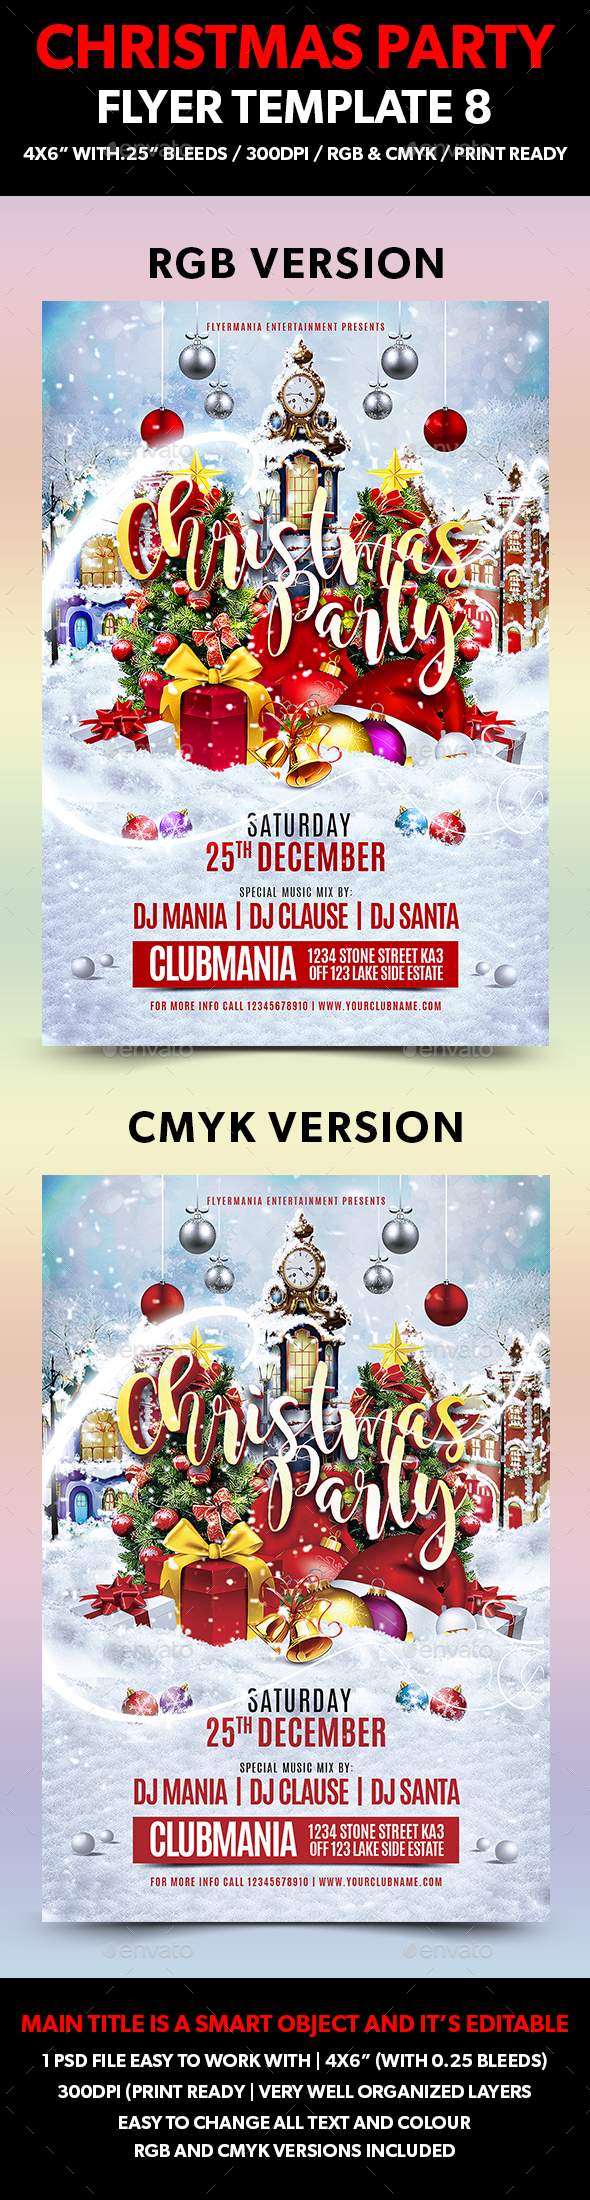 Christmas Party Flyer Template 8